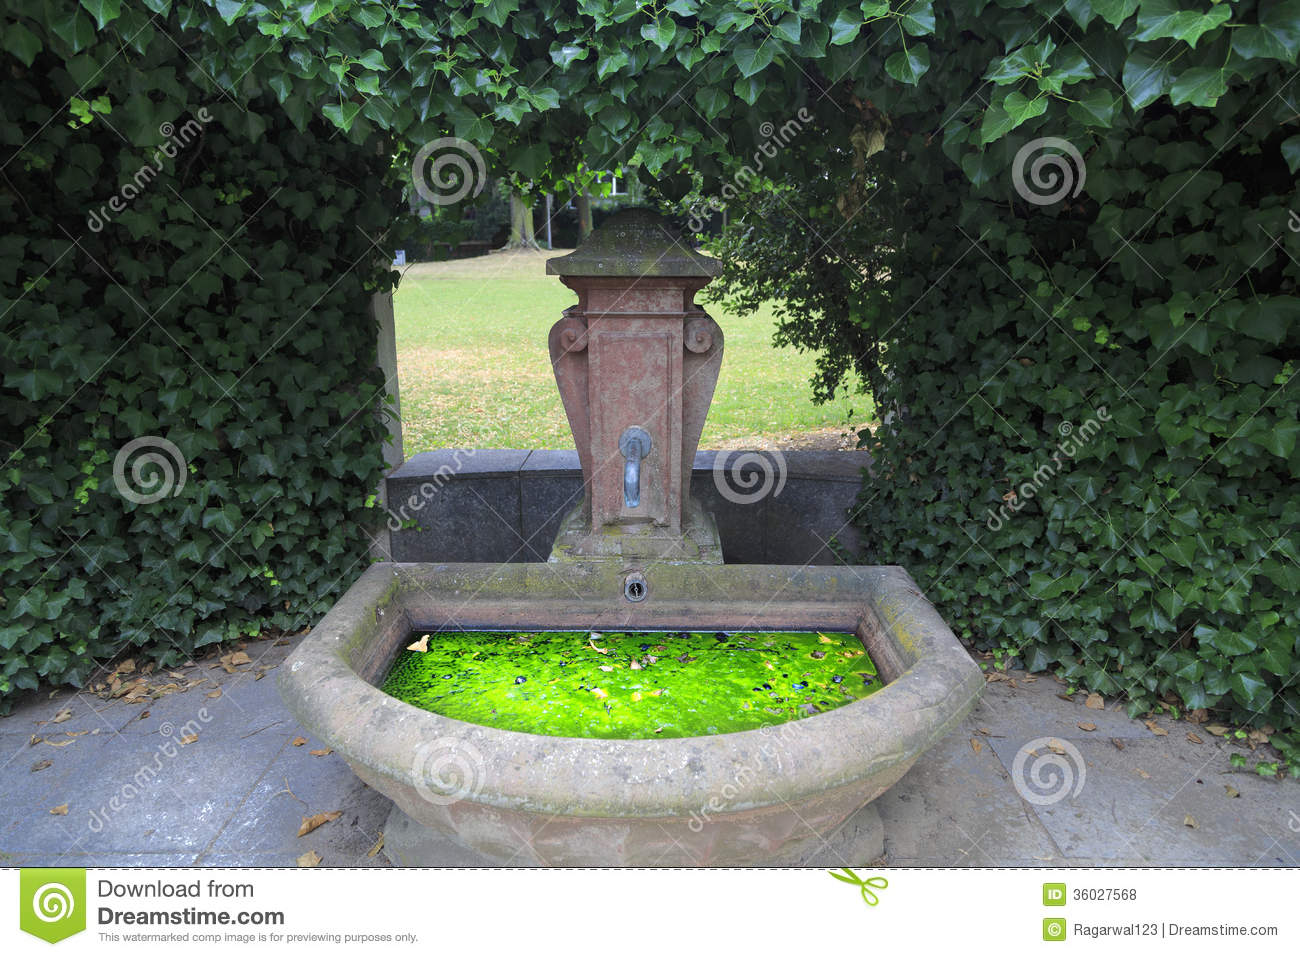 algae grow in a water basin frankfurt germany royalty free stock photos image 36027568. Black Bedroom Furniture Sets. Home Design Ideas